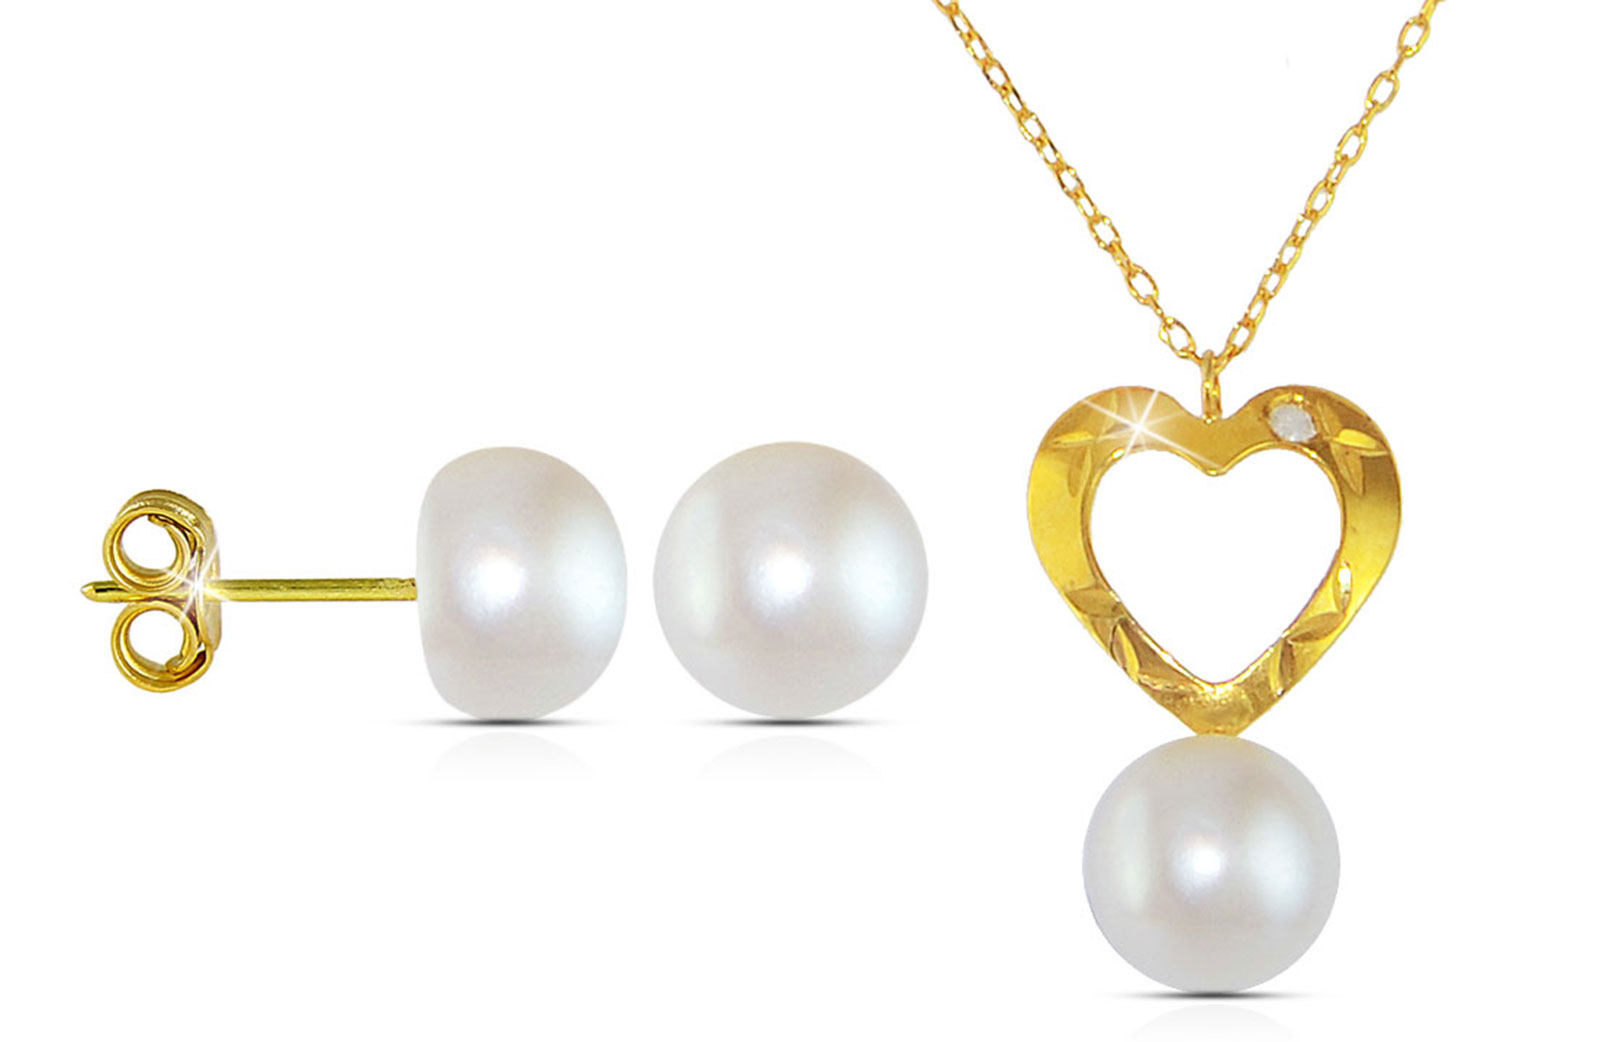 Vera Perla 18K Gold  Diamond and Pearl Heart Pendant with 10K Gold Earrings and Chain